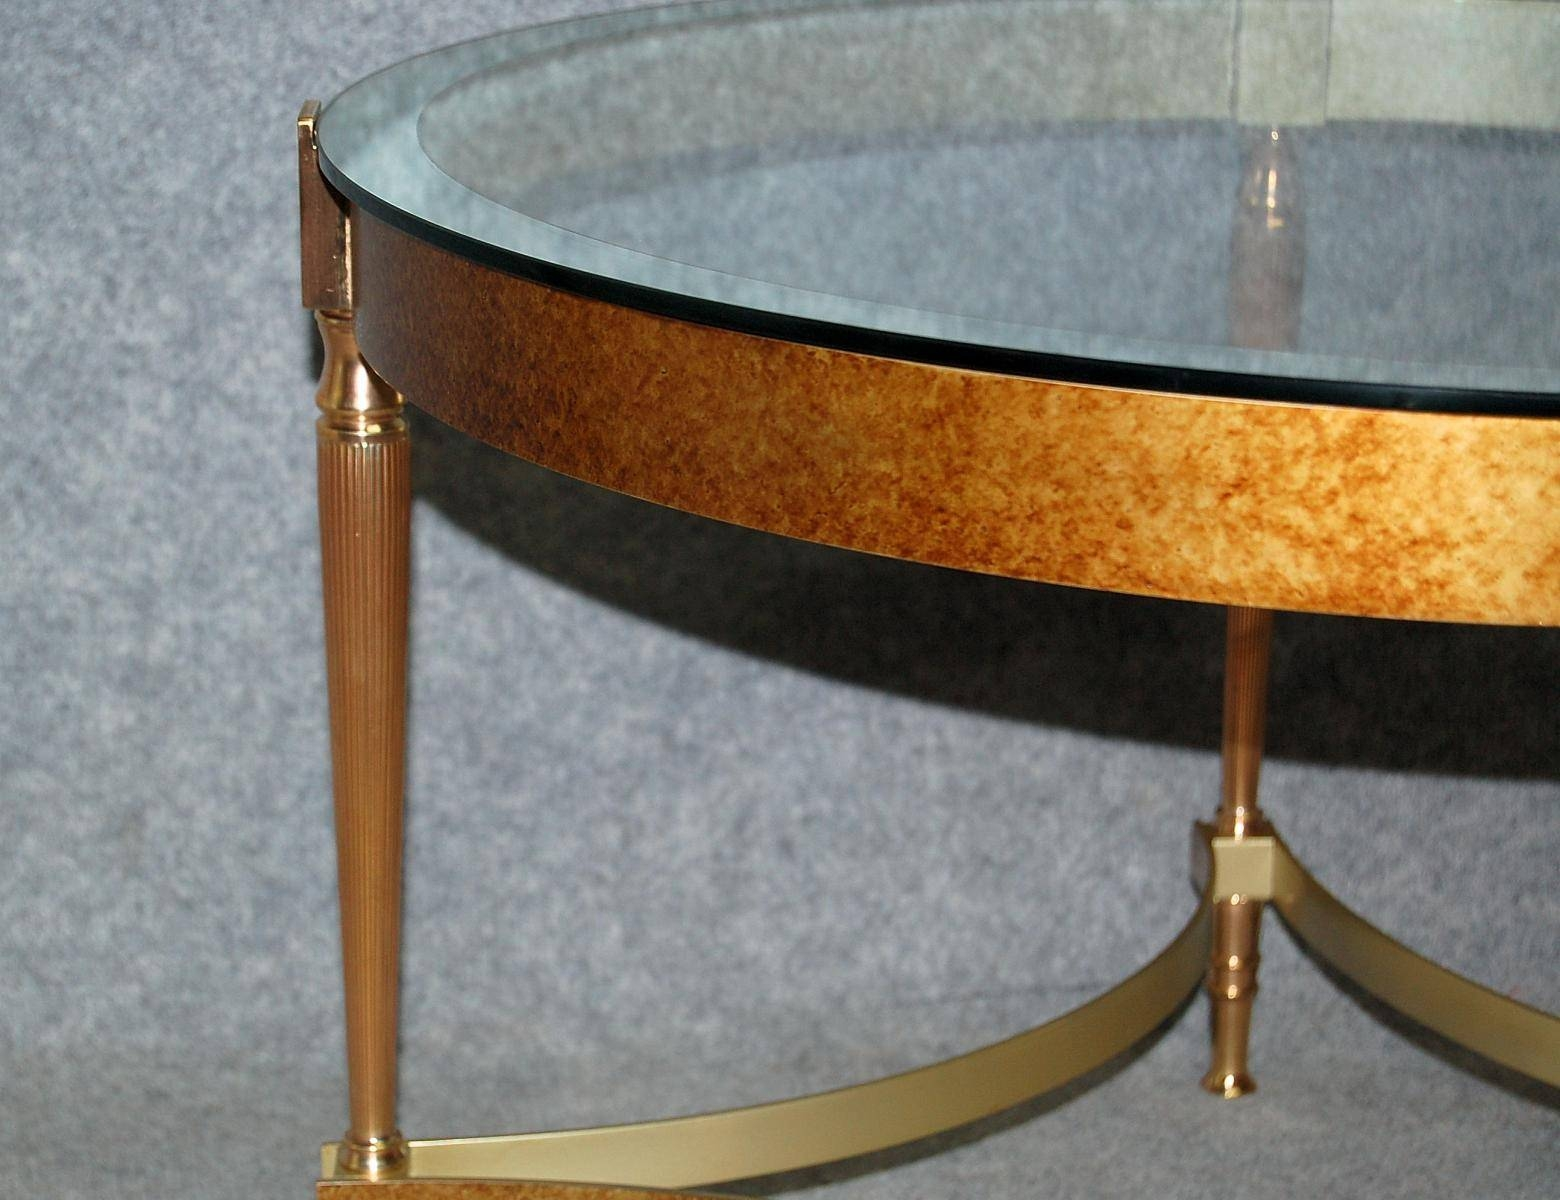 Vintage Bronze Coffee Table With Glass Top For Sale At Pamono throughout Bronze Coffee Table Glass Top (Image 29 of 30)